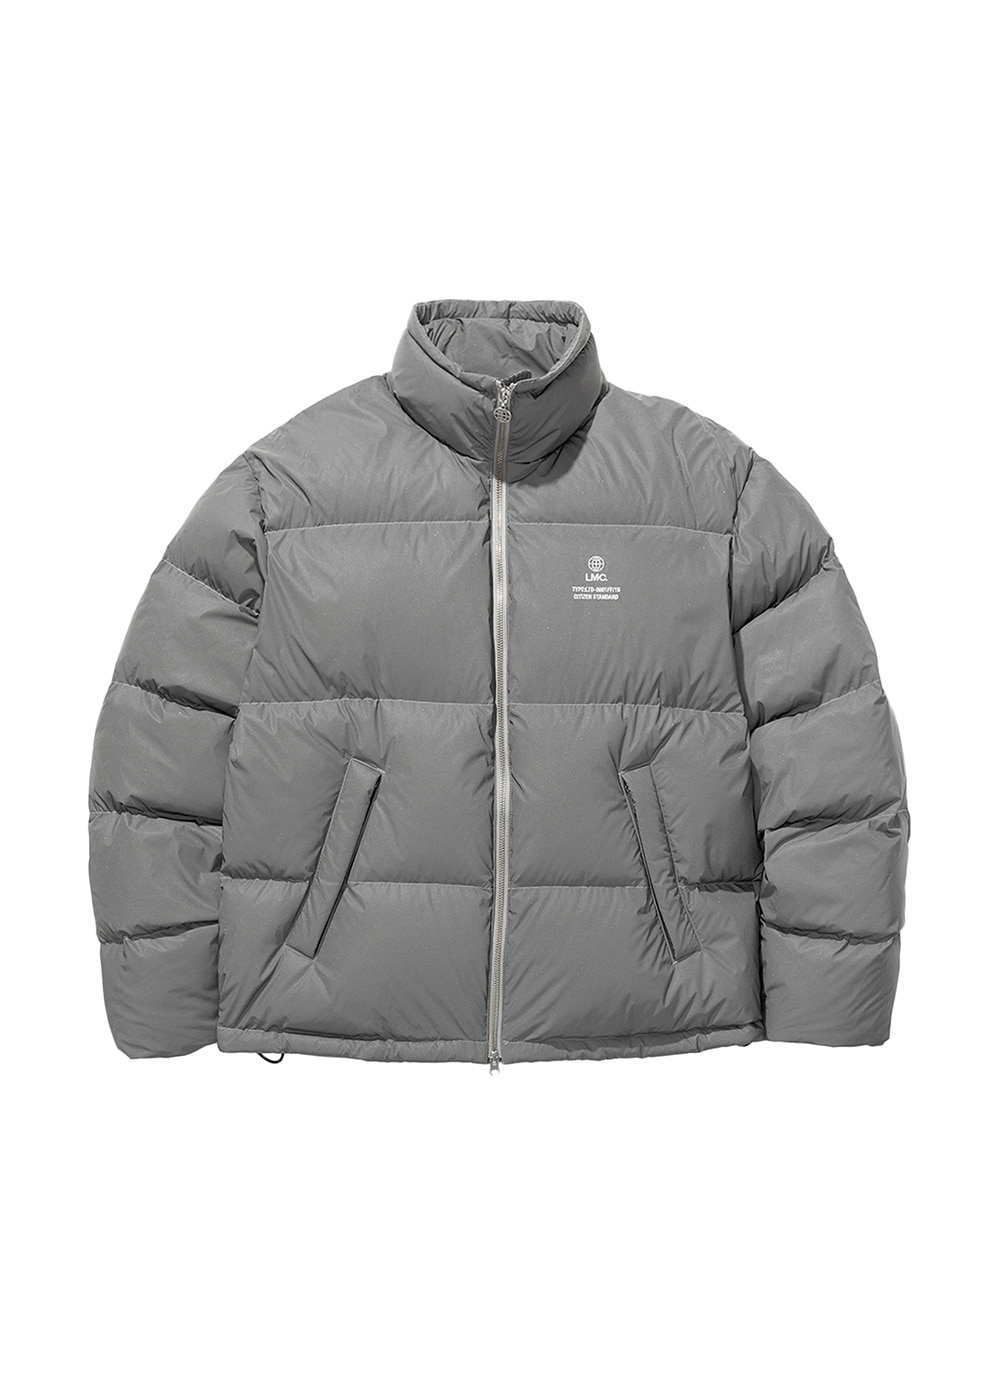 LMC GLOBE SHORT DOWN PARKA reflective